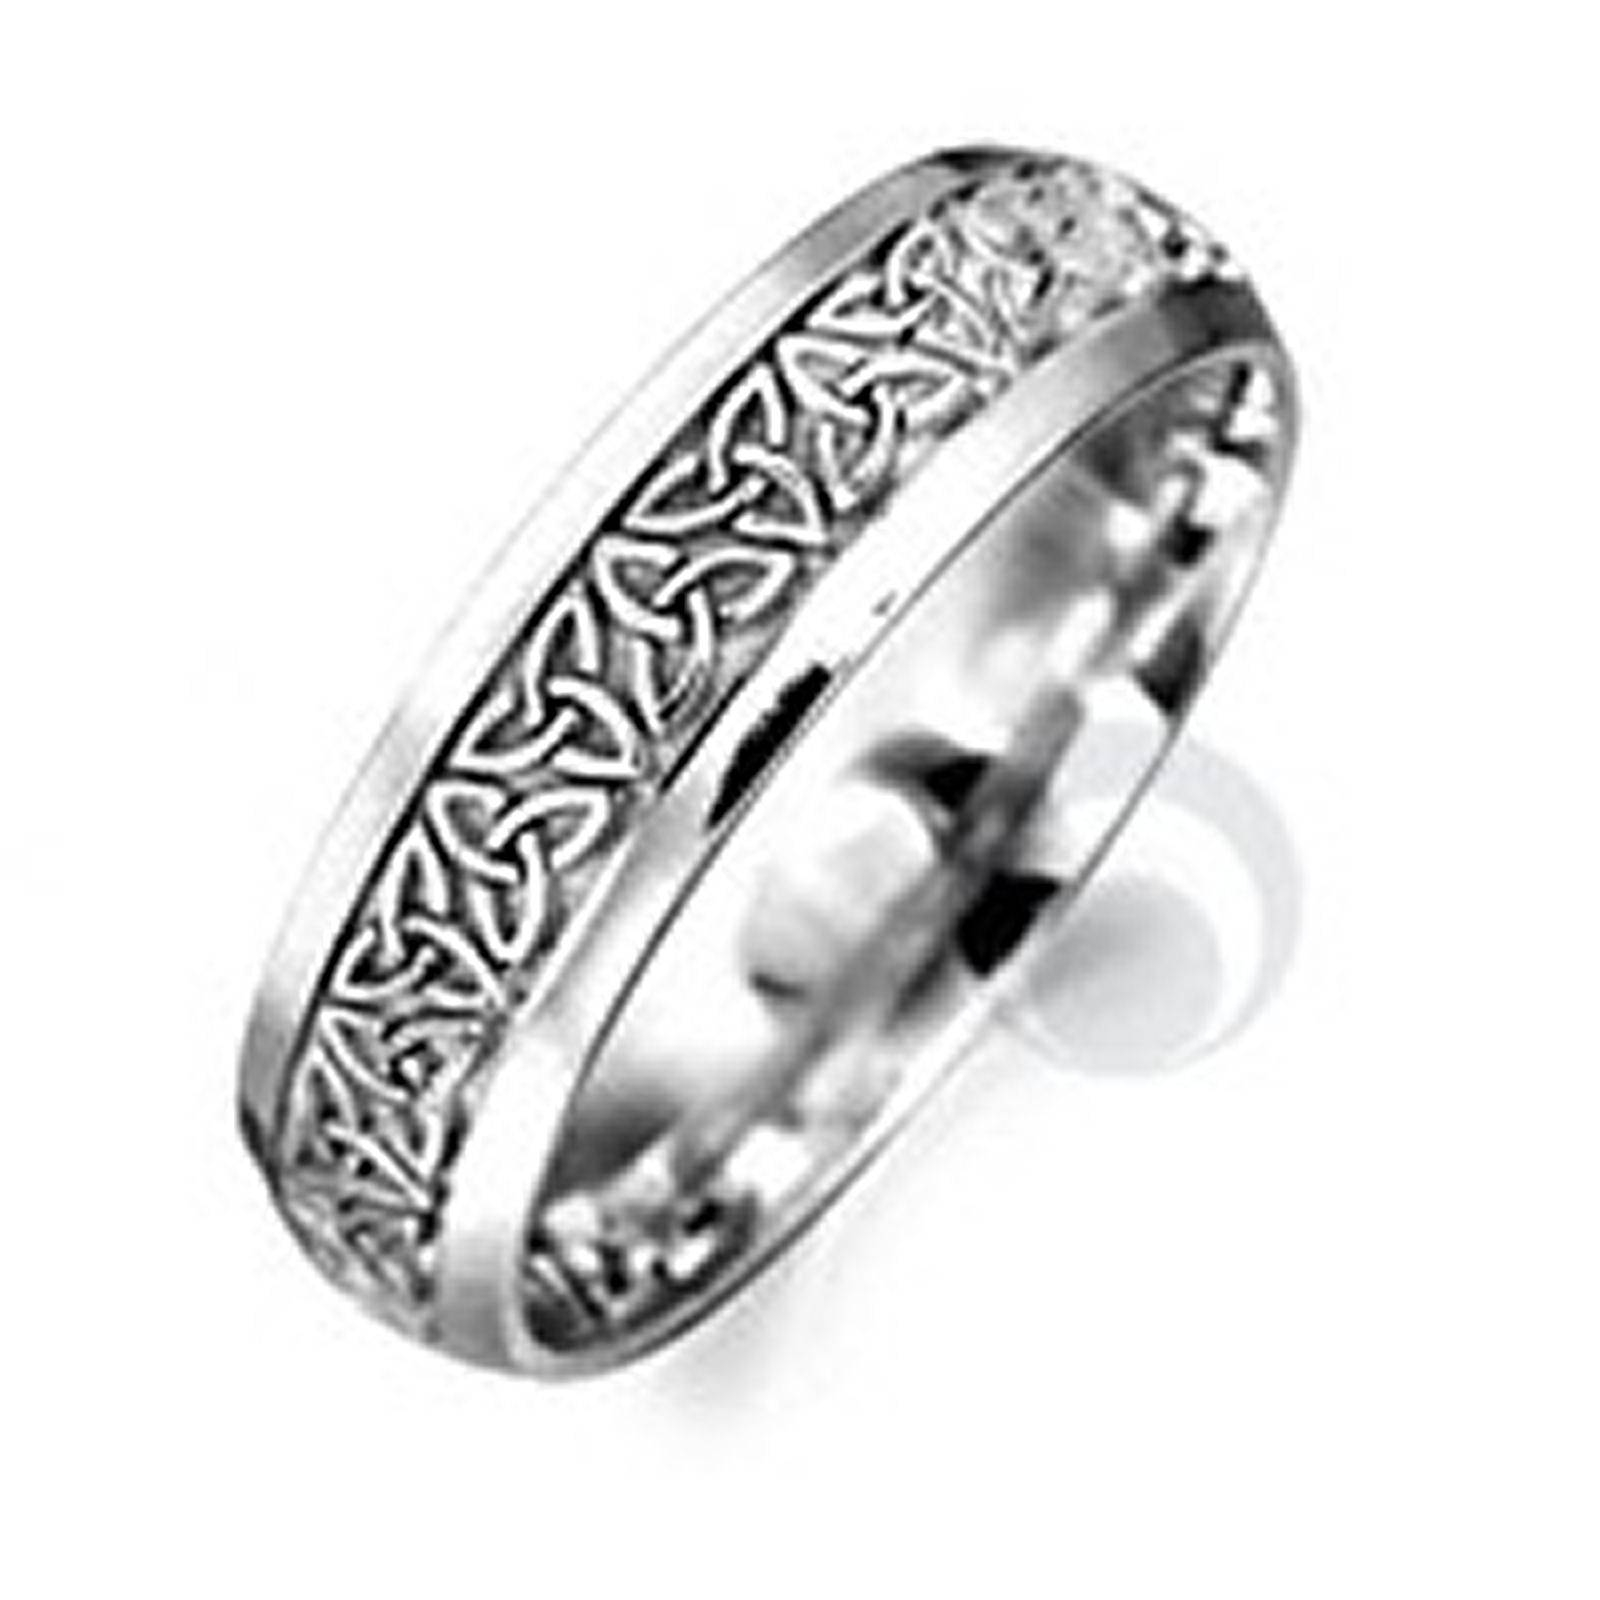 Celtic Patterned Platinum Wedding Ring Wedding Dress From The Inside Platinum Band Wedding Rings (View 5 of 15)